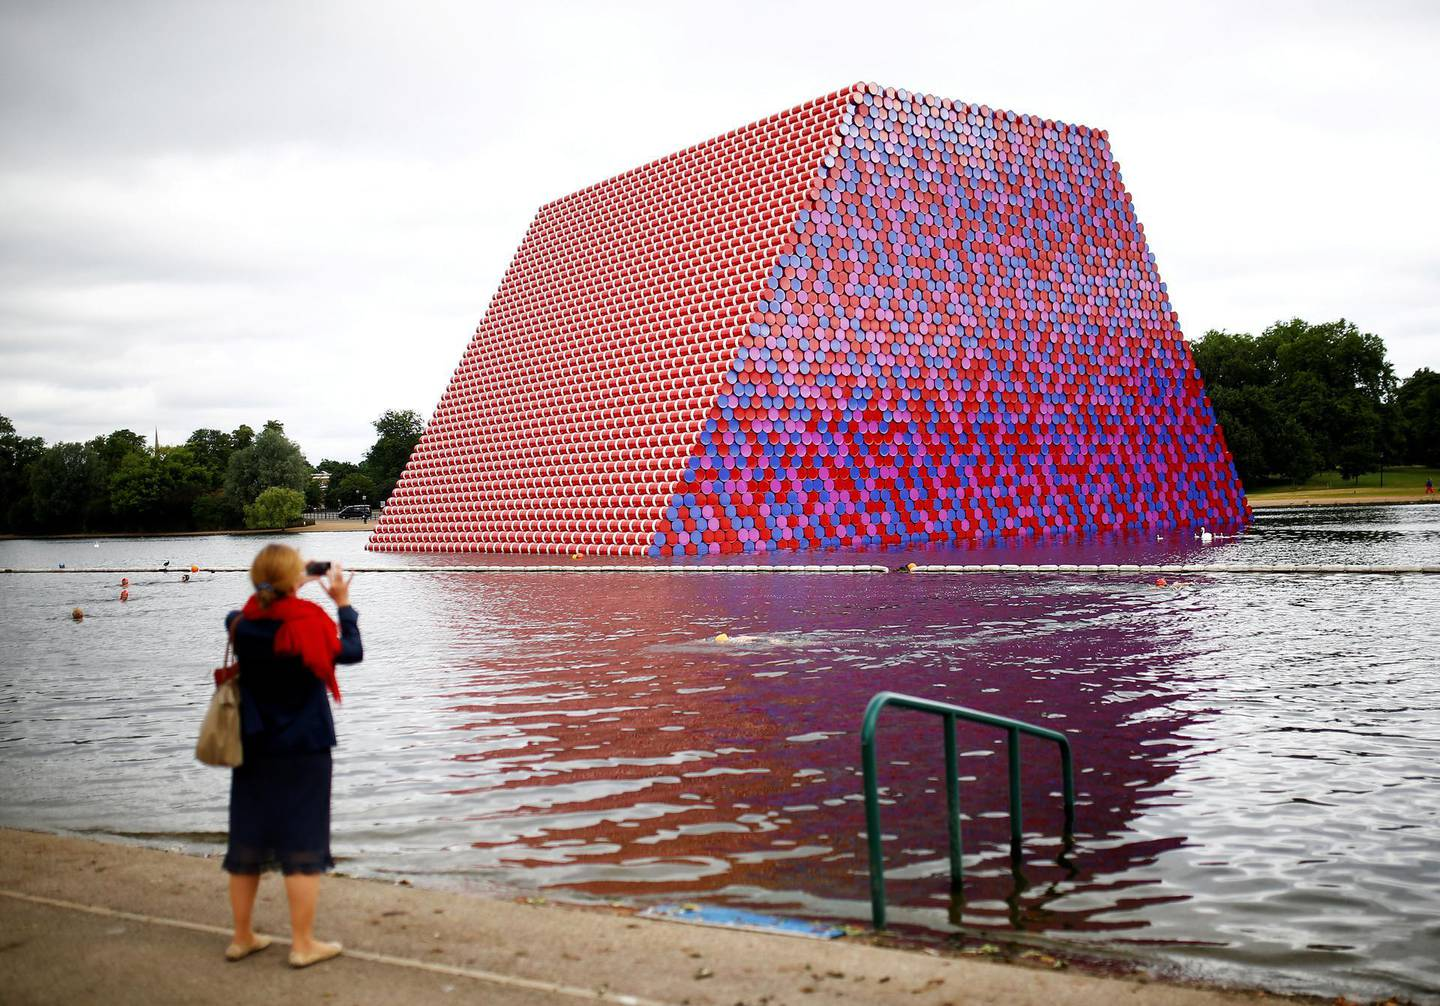 """FILE PHOTO: A woman photographs swimmers exercising in the Serpentine River in front of Christo's """"The London Mastaba"""", in Hyde Park, London, Britain, June 19, 2018. REUTERS/Henry Nicholls/File Photo"""